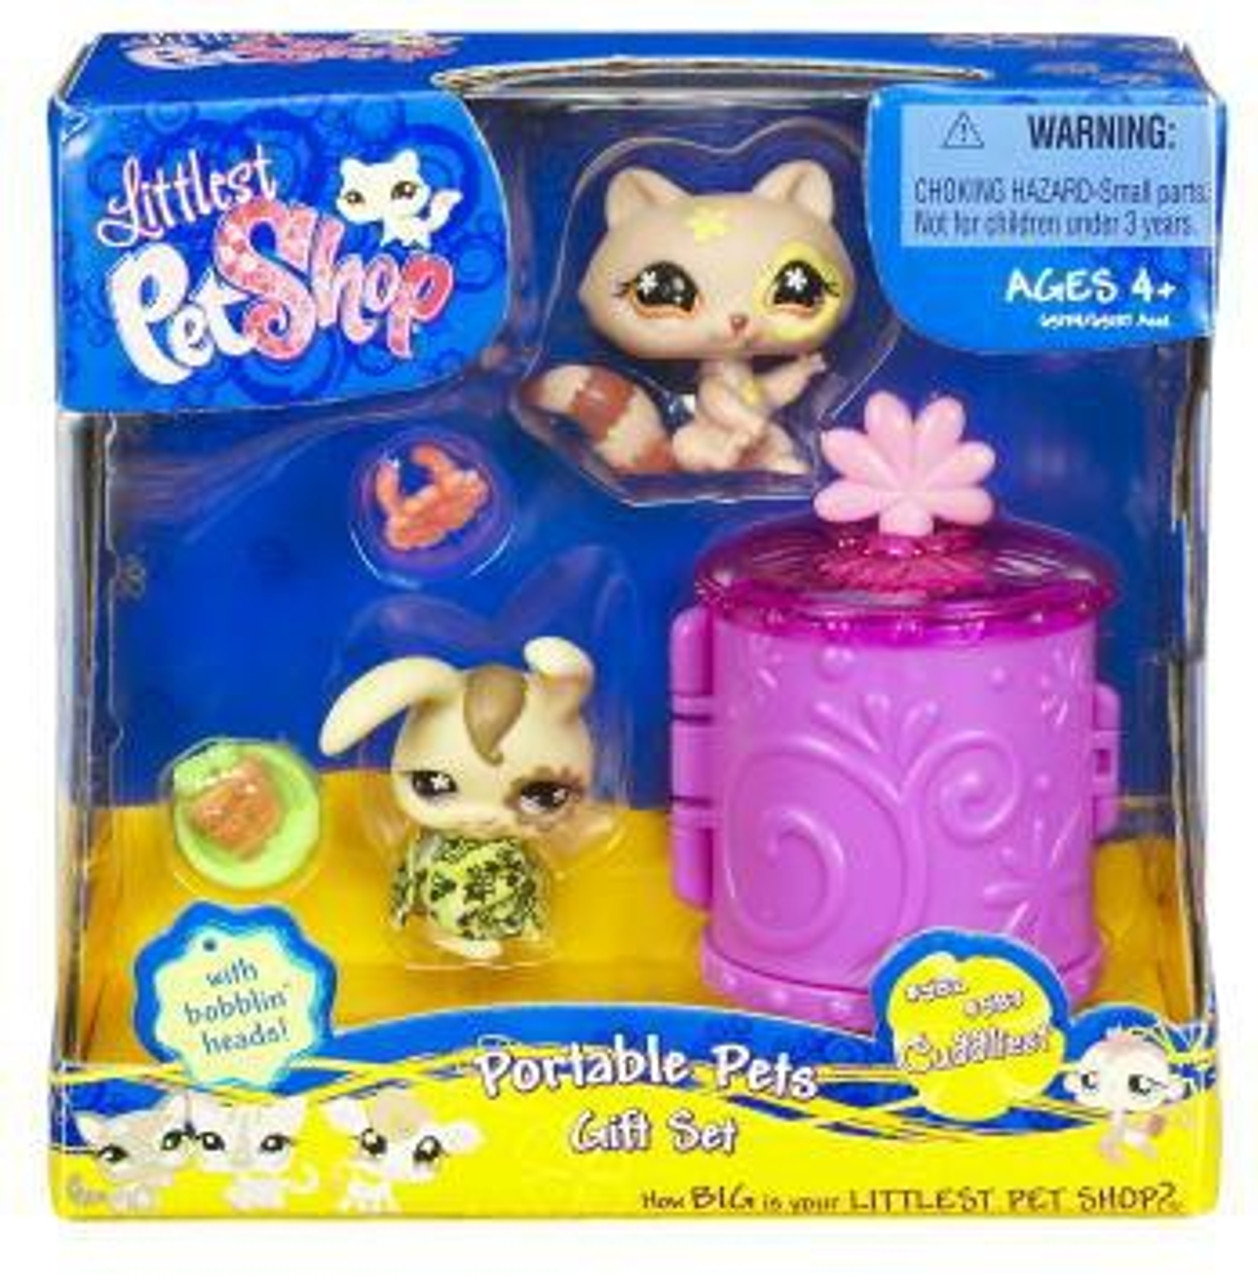 Littlest Pet Shop Exclusive Portable Pets Gift Set with Tree Frog /& Hermit Crab